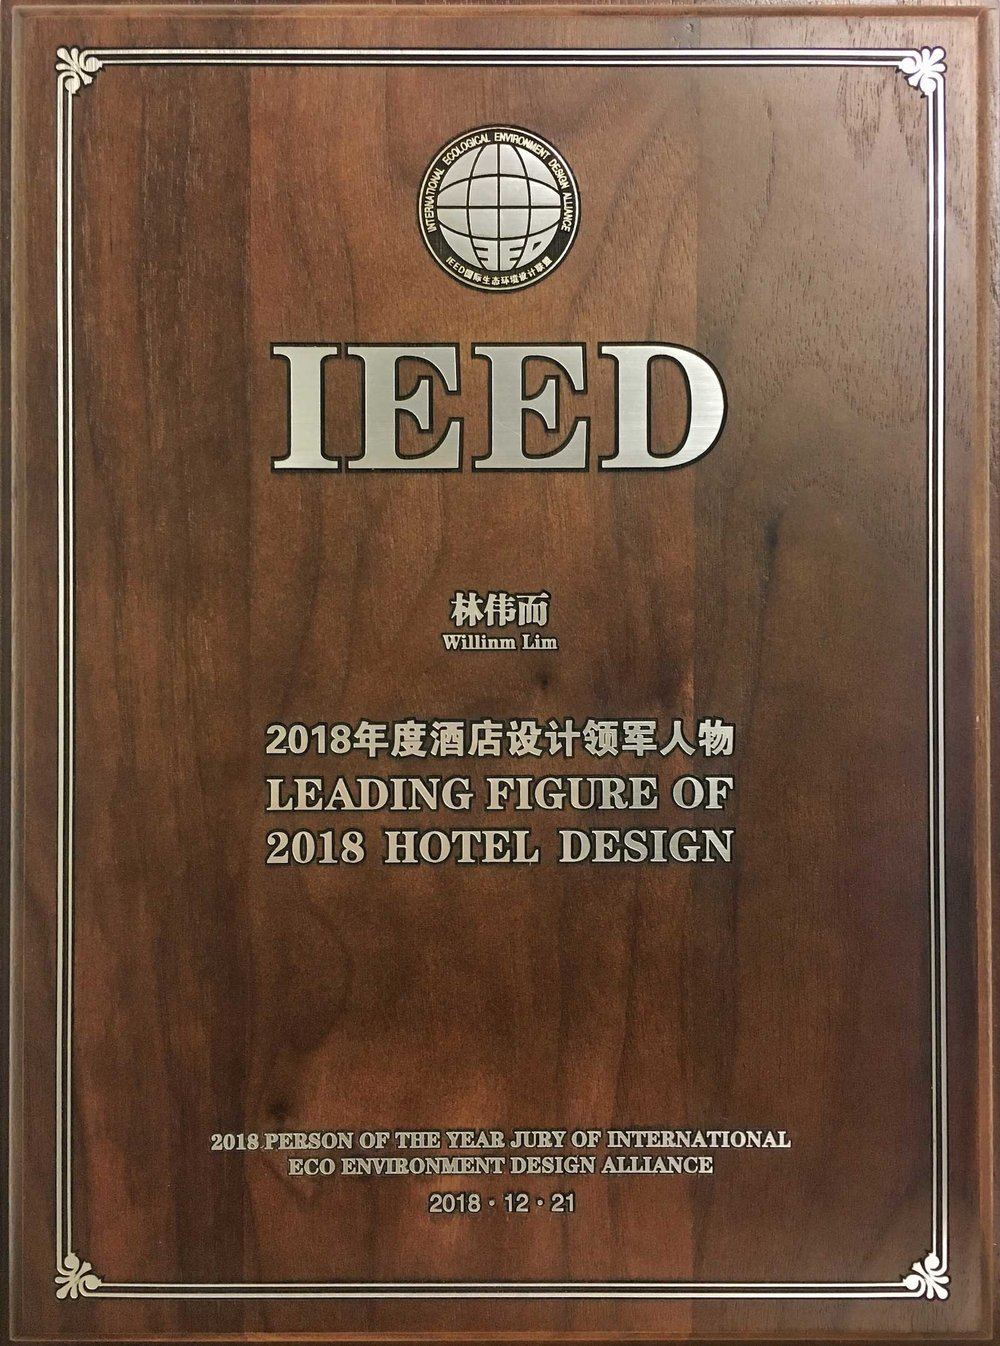 IEED Leading Figure of 2018 Hotel Design CL3